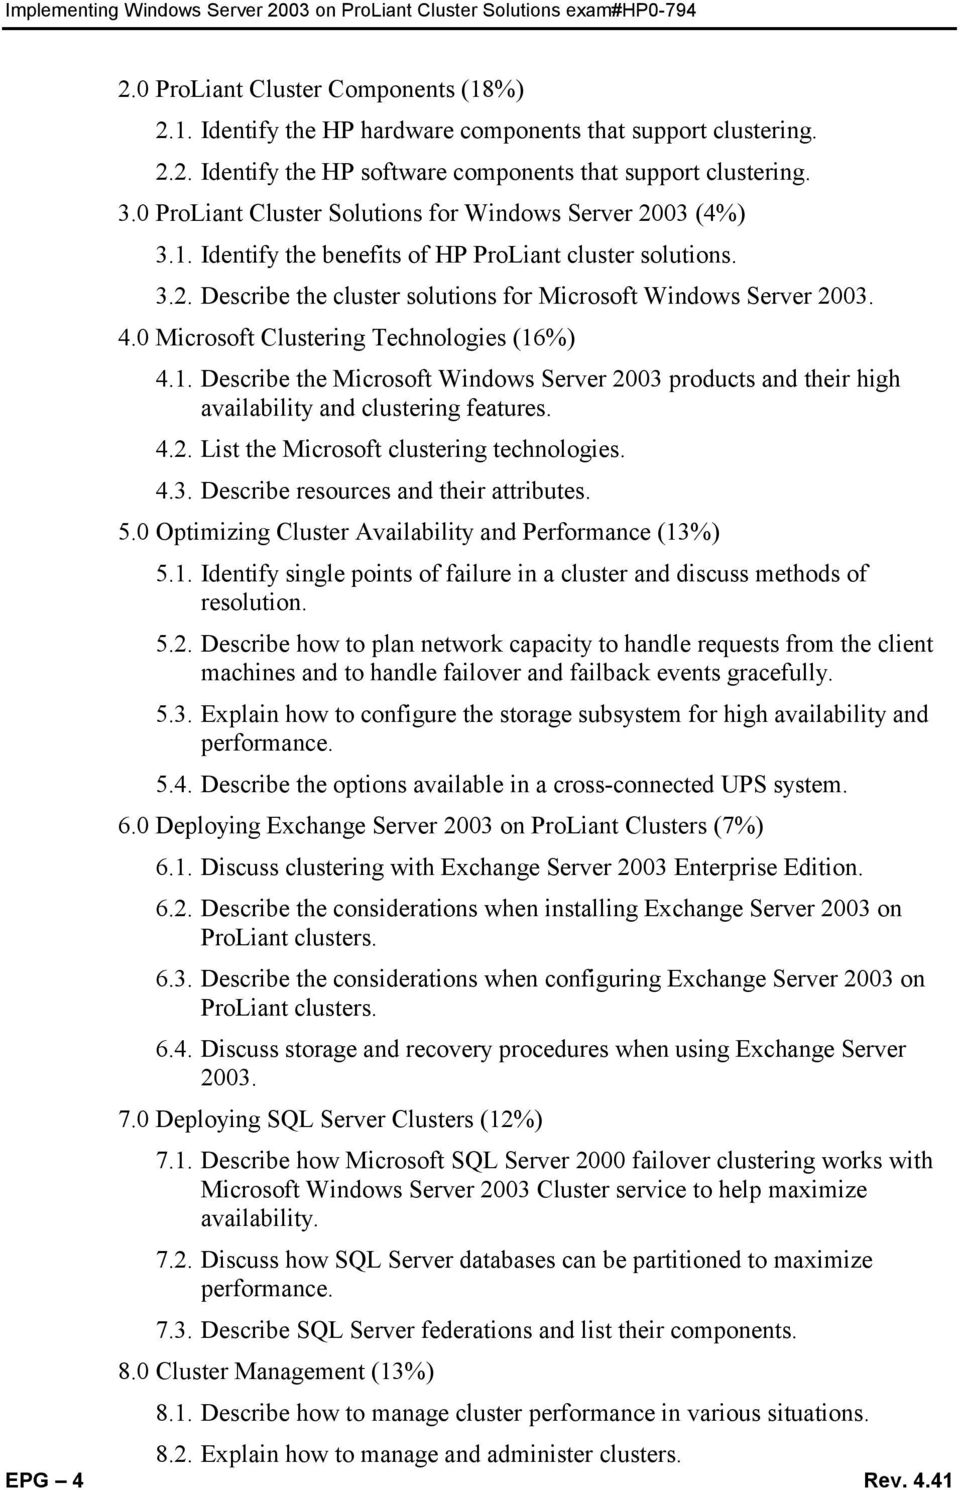 0 Microsoft Clustering Technologies (16%) 4.1. Describe the Microsoft Windows Server 2003 products and their high availability and clustering features. 4.2. List the Microsoft clustering technologies.